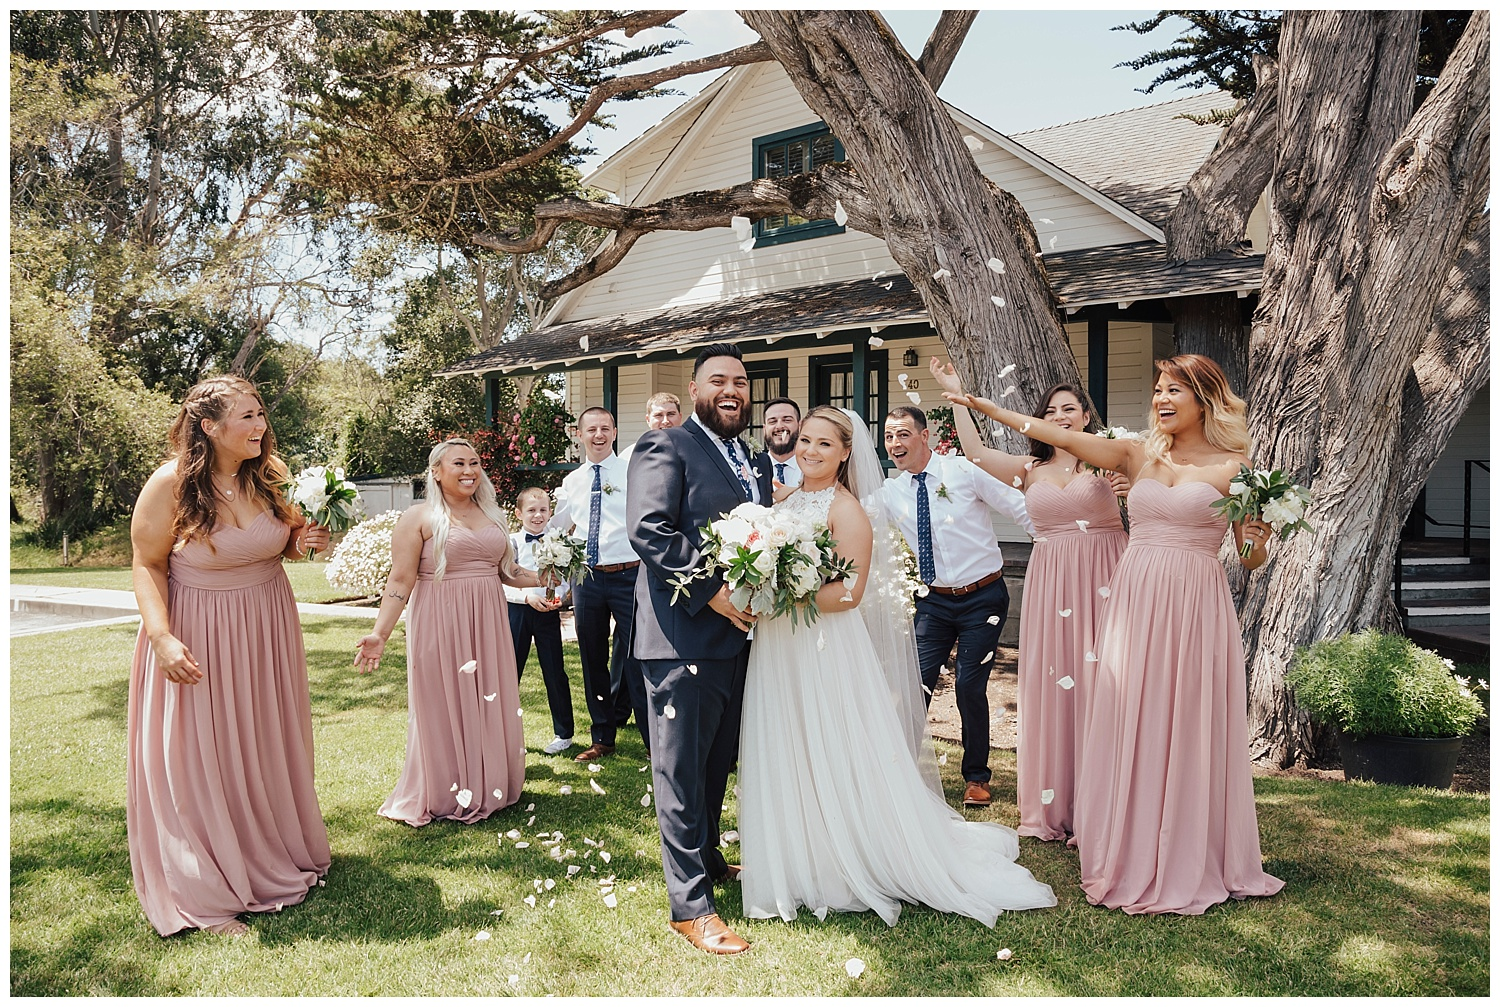 just-married-mission-ranch-bridal-party-carol-oliva-photography.jpg